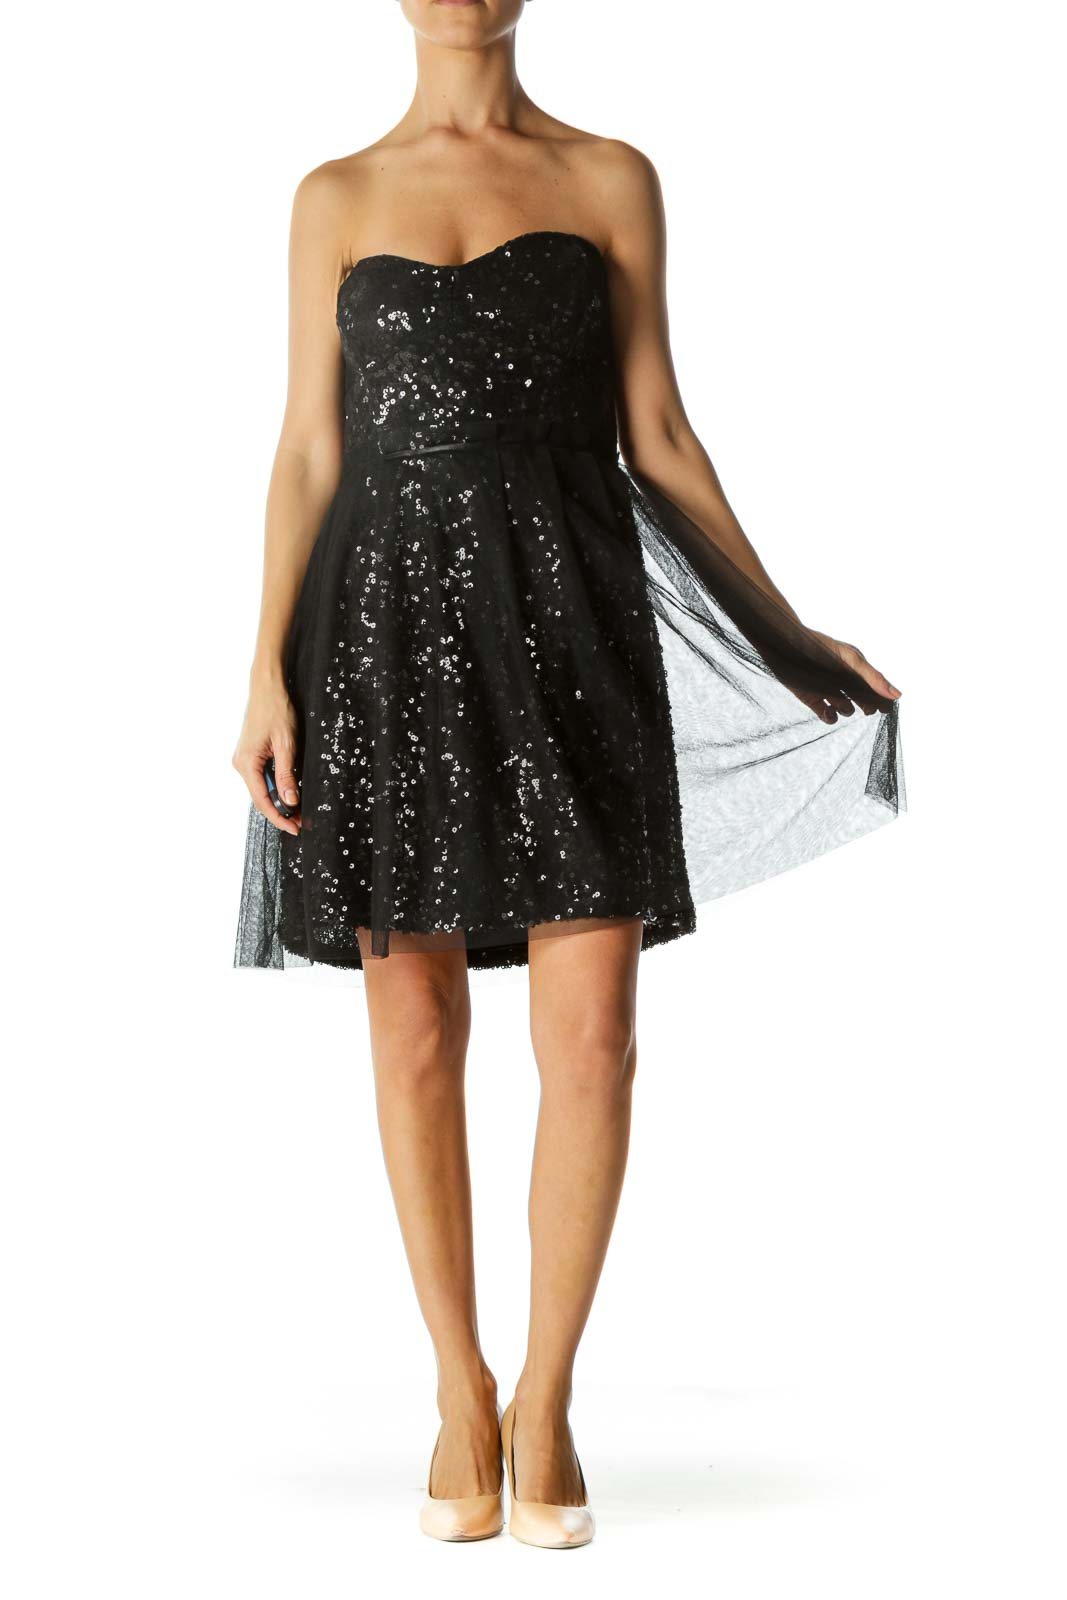 Black Sheer Sequin Tube Cocktail Dress